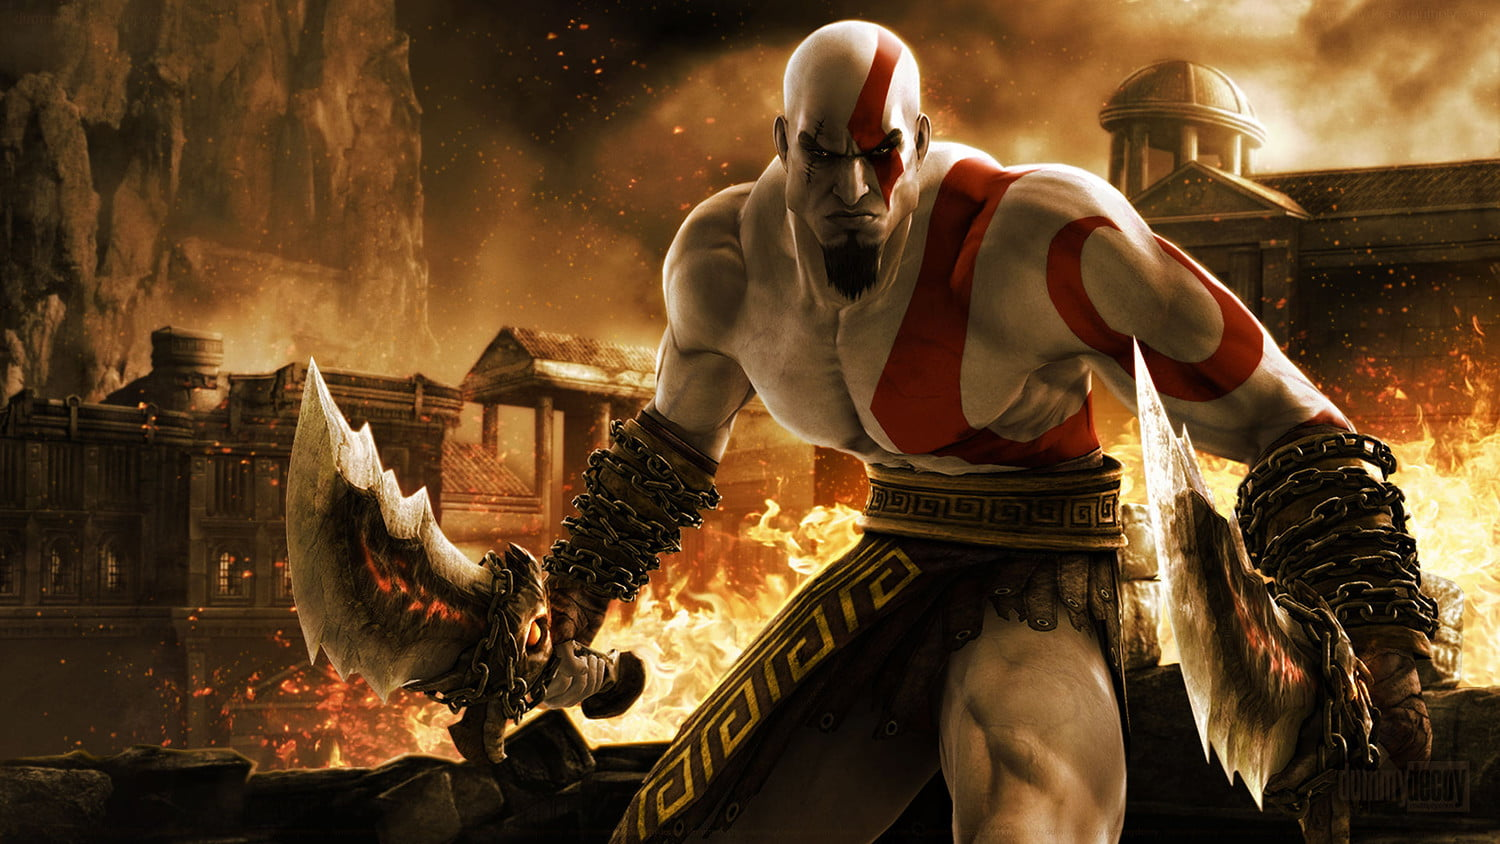 The Original 'God of War' was an Intellectual Brute